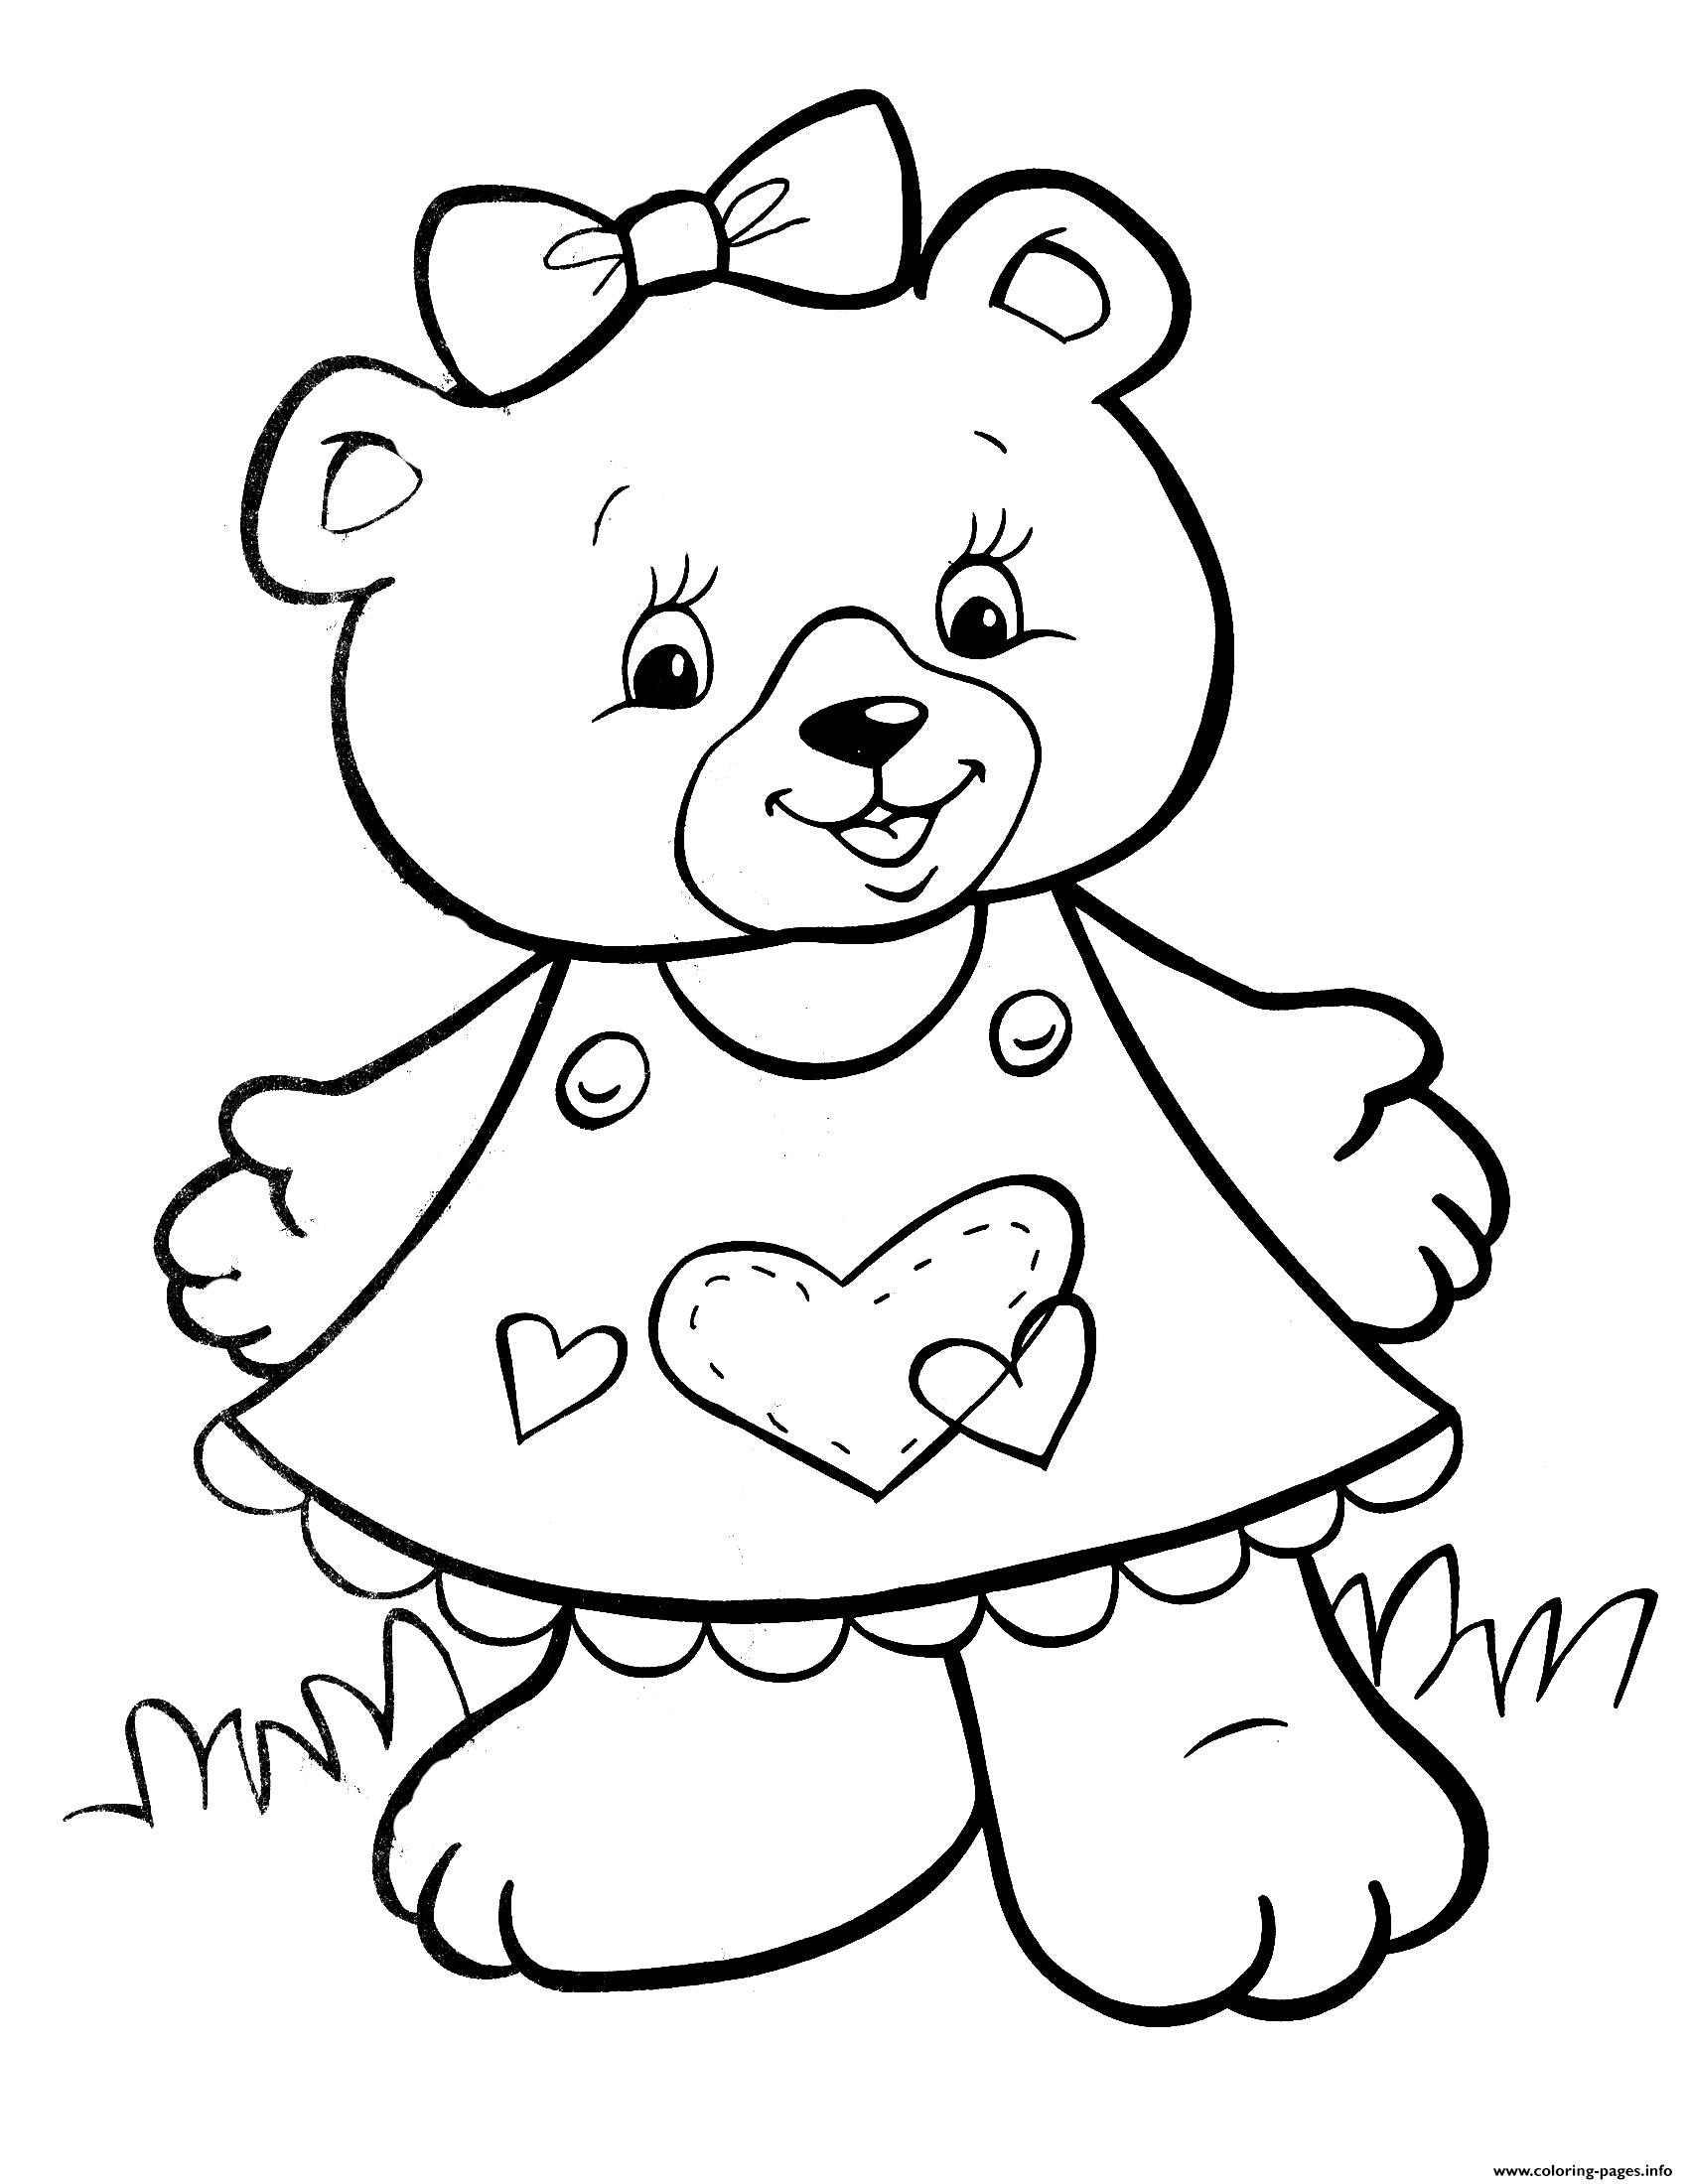 - Crayola Lovely Teddy Bear Girls Coloring Pages Printable